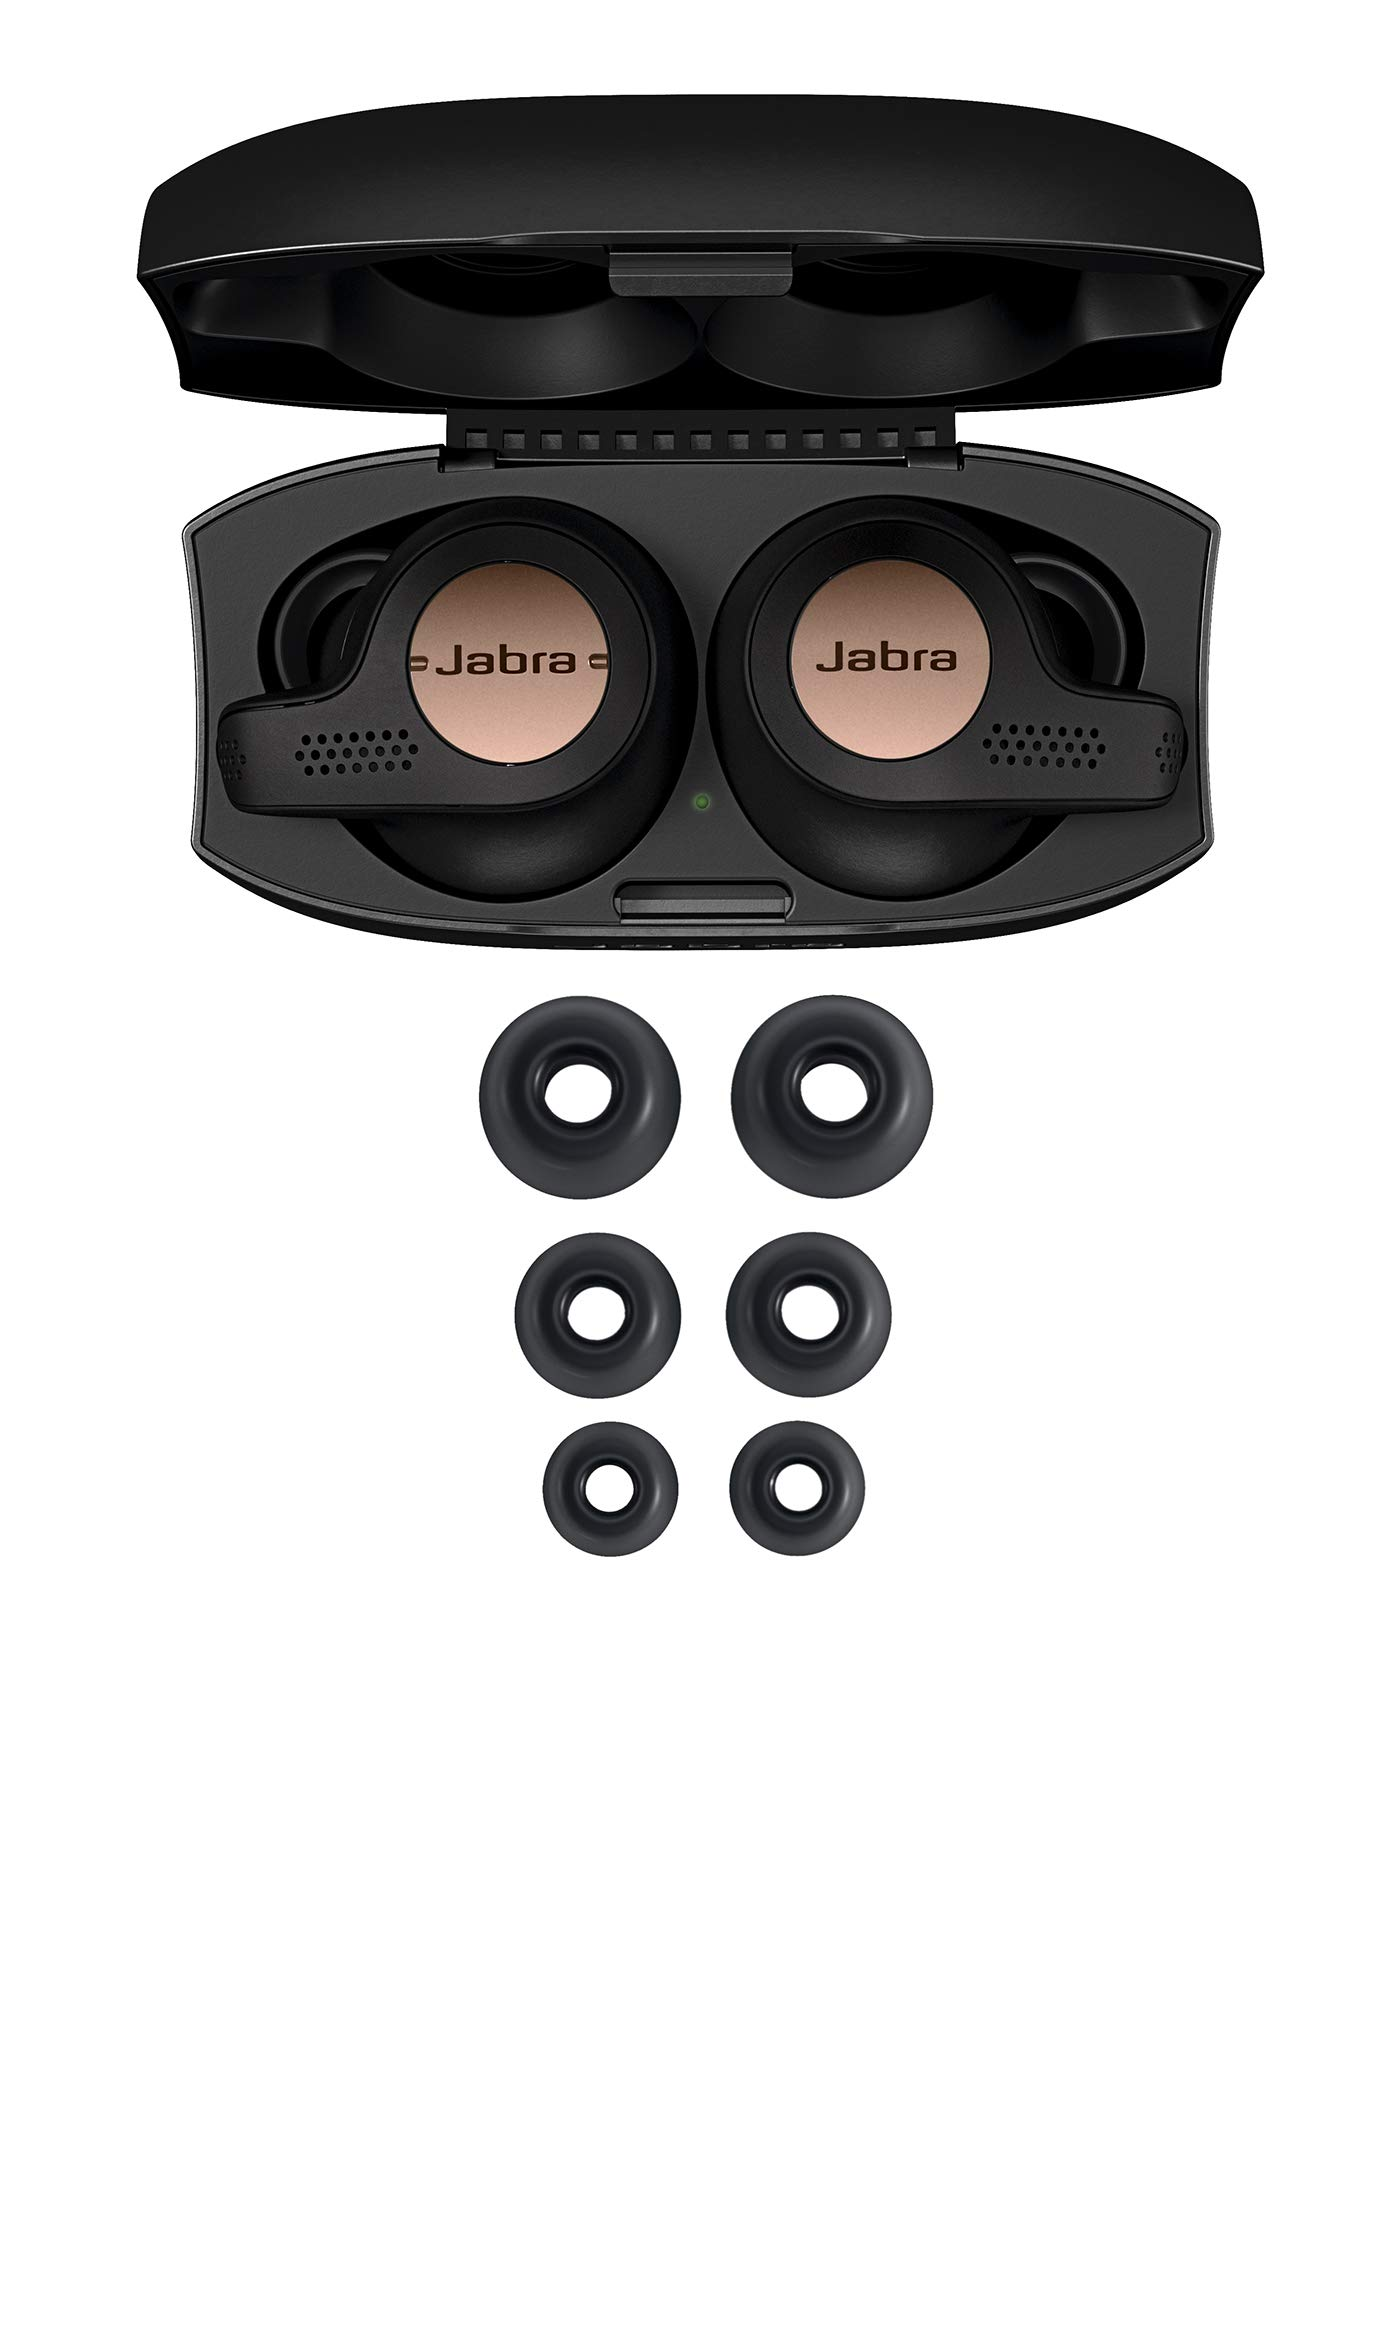 Jabra Elite Active 65t True Wireless Sports Earbuds with Charging Case - Copper Black by Jabra (Image #3)